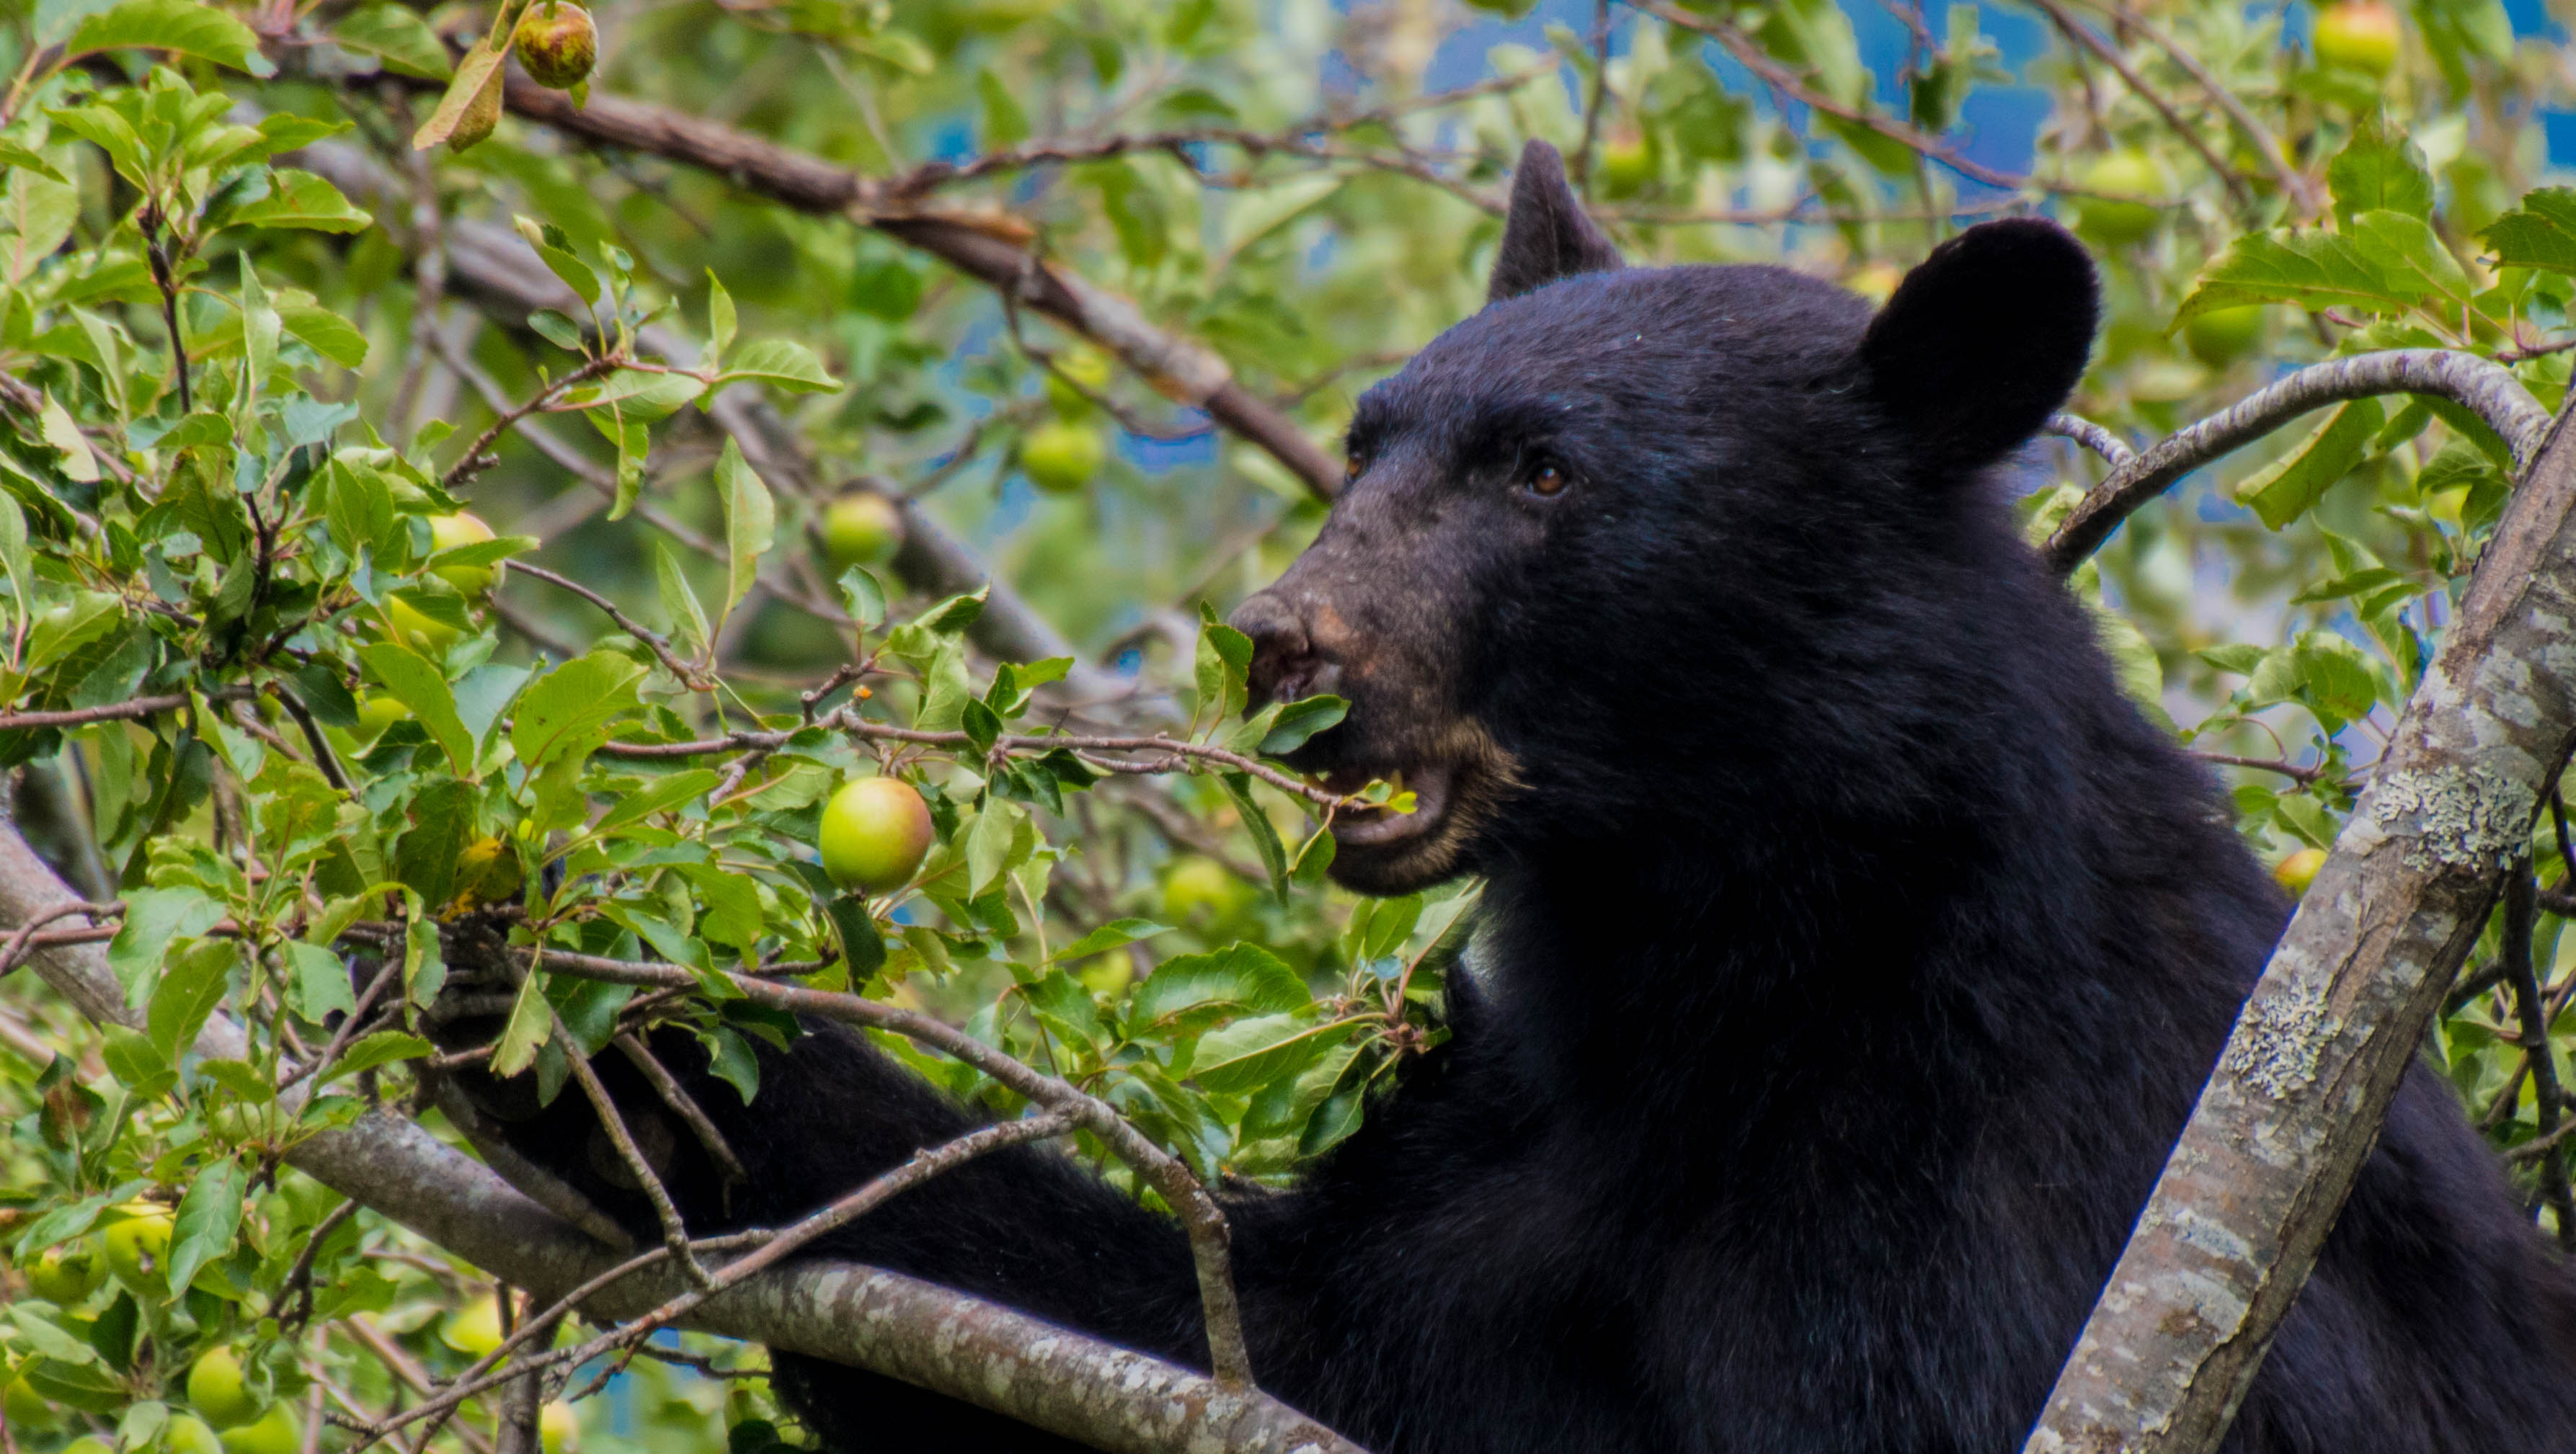 safety tips for bear encounters, bear eating fruit